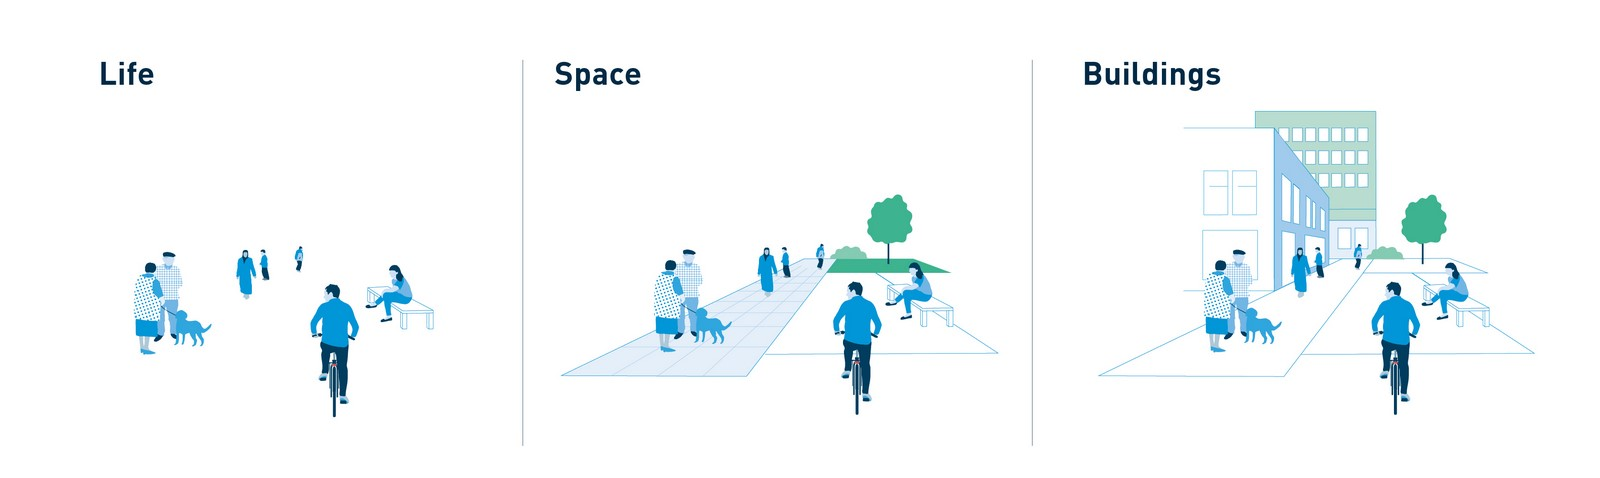 Reinstating the Human in our city spaces - Sheet3